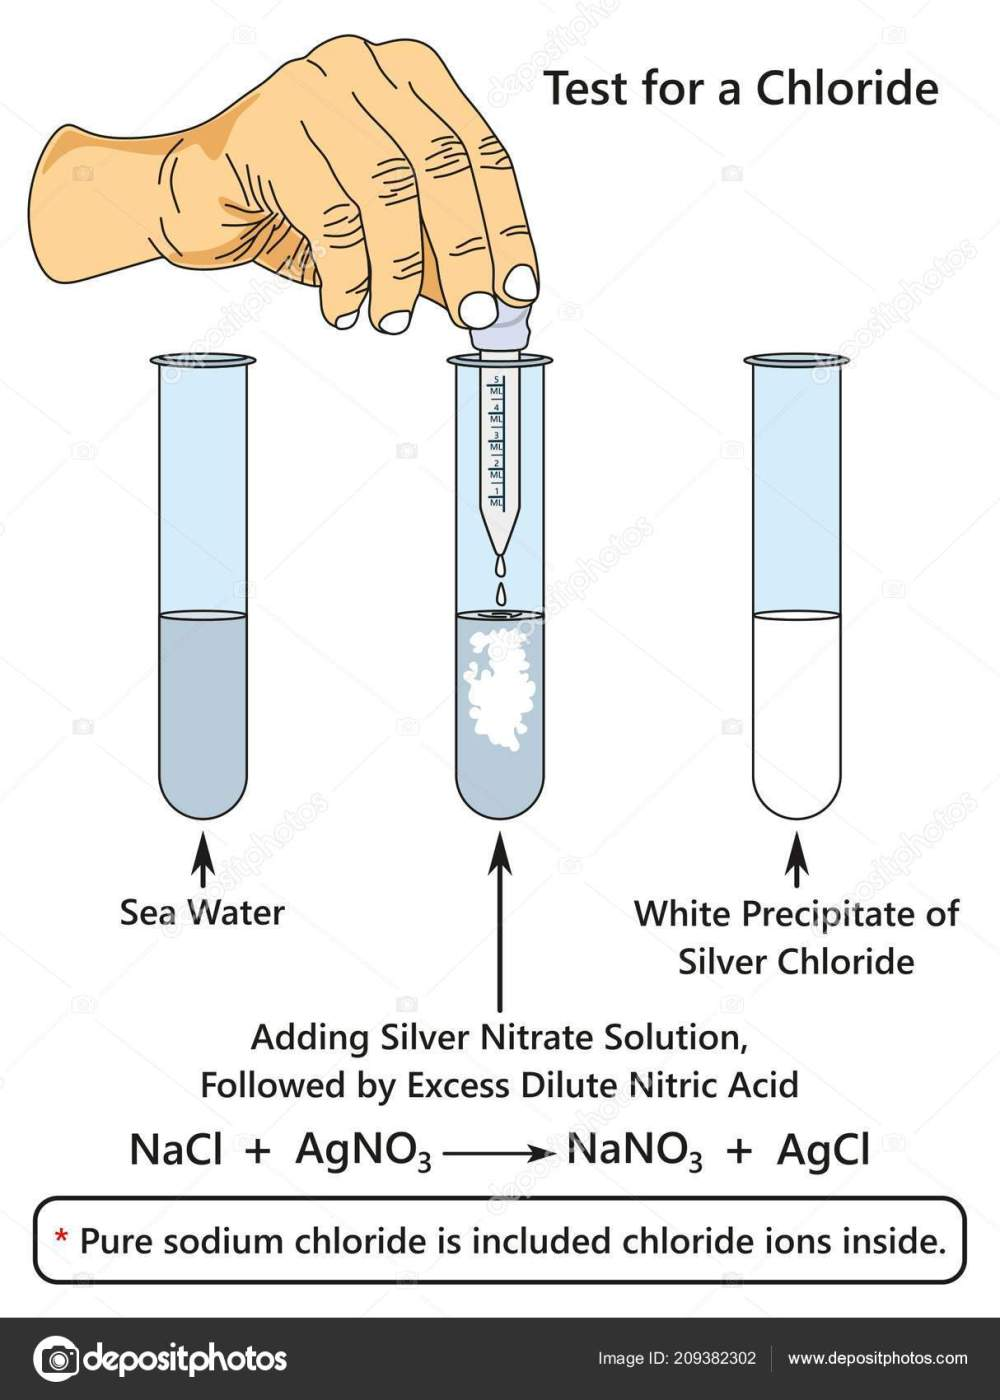 medium resolution of test for a chloride infographic diagram showing a laboratory experiment indicates presence of chloride ion when adding silver nitrate solution to sea water